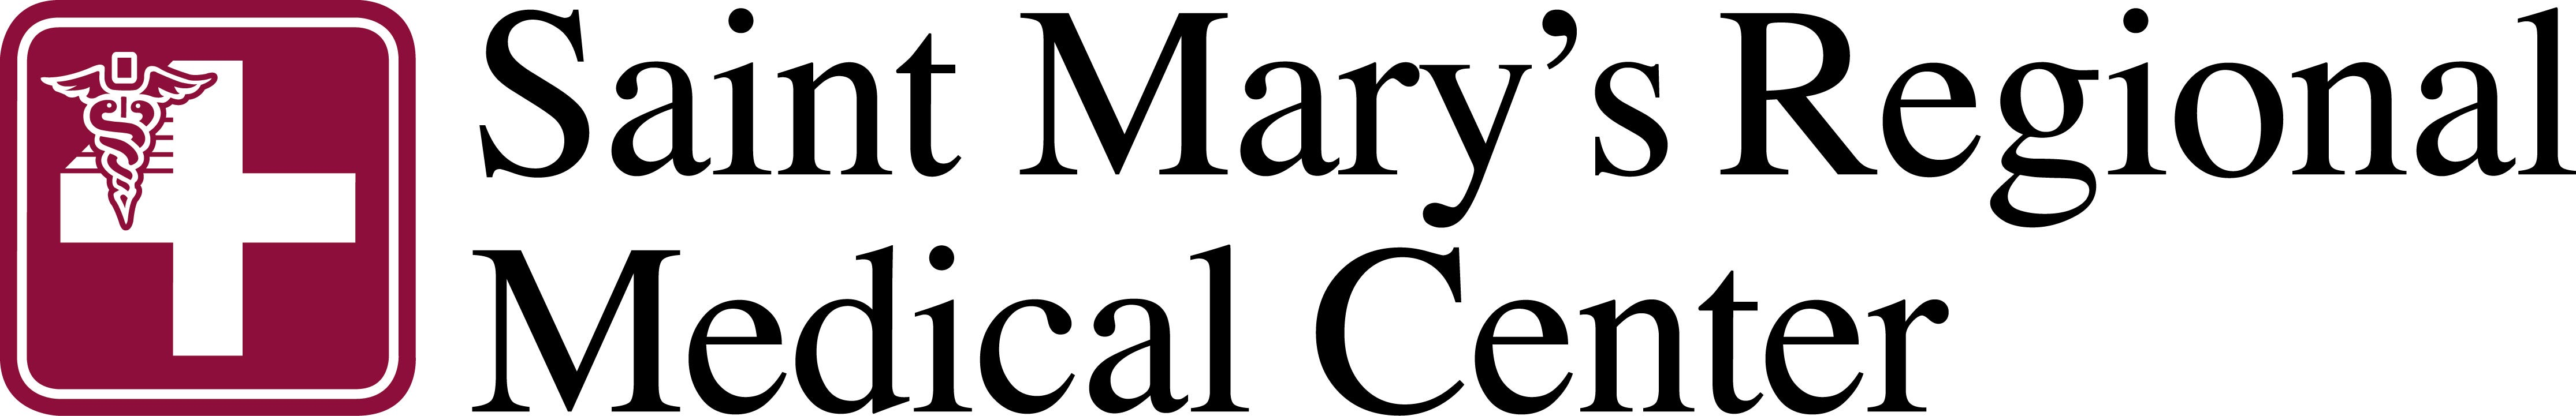 Saint Mary's Regional Medical Center